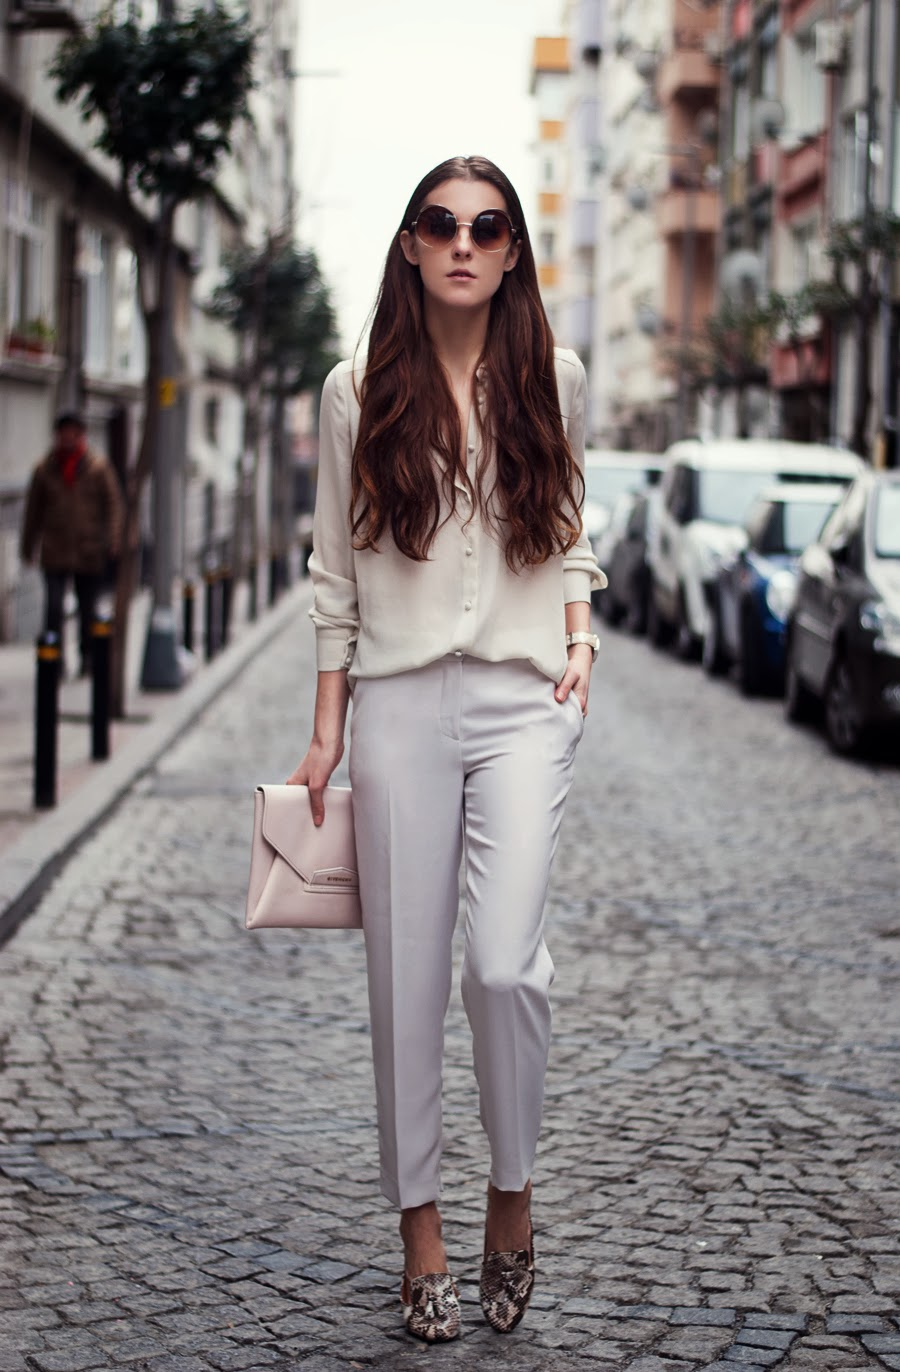 streetstyle istanbul , russian blogger, fashion blogger , white pants outfit , street style 2014 , spring outfits, long hair girl, fashion street style details, topshop, gasmy, givenchy outfit , snake skin shoes, loafers outfit